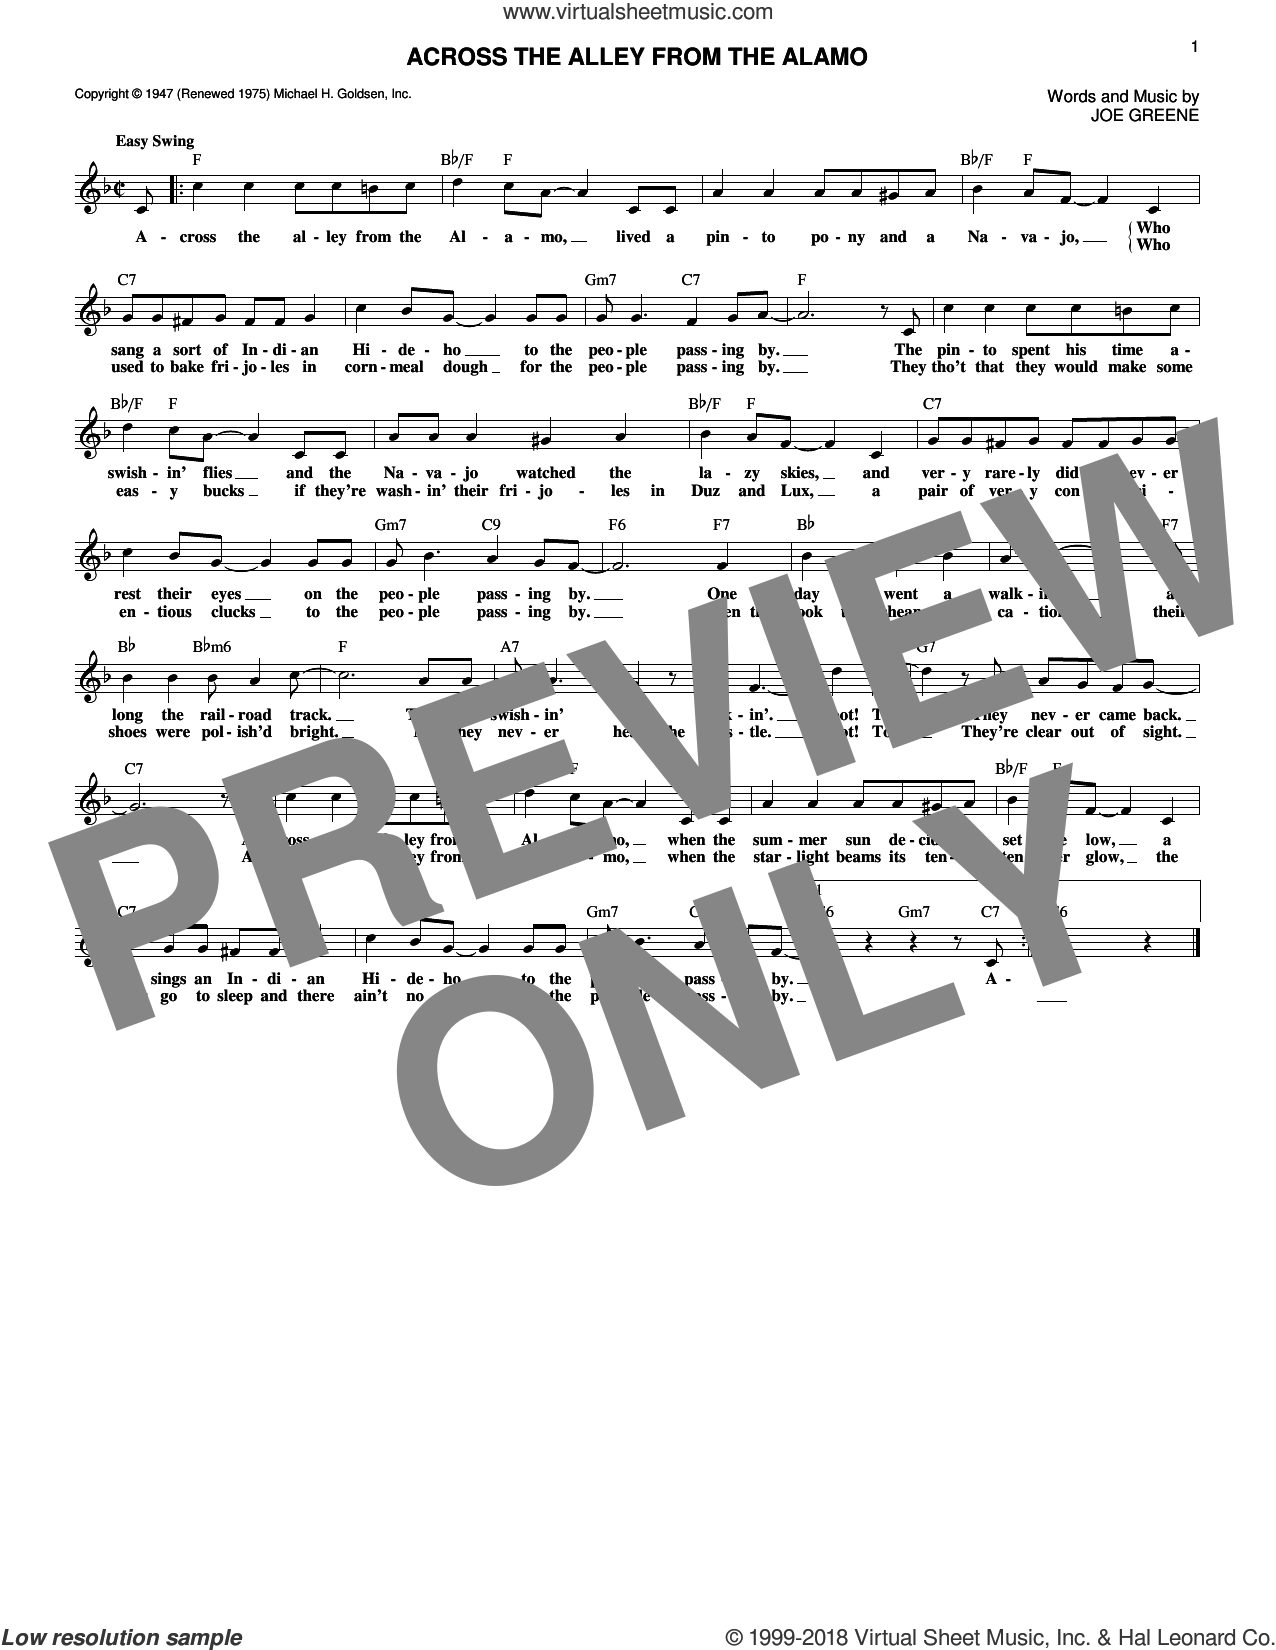 Across The Alley From The Alamo sheet music for voice and other instruments (fake book) by Joe Greene, intermediate skill level